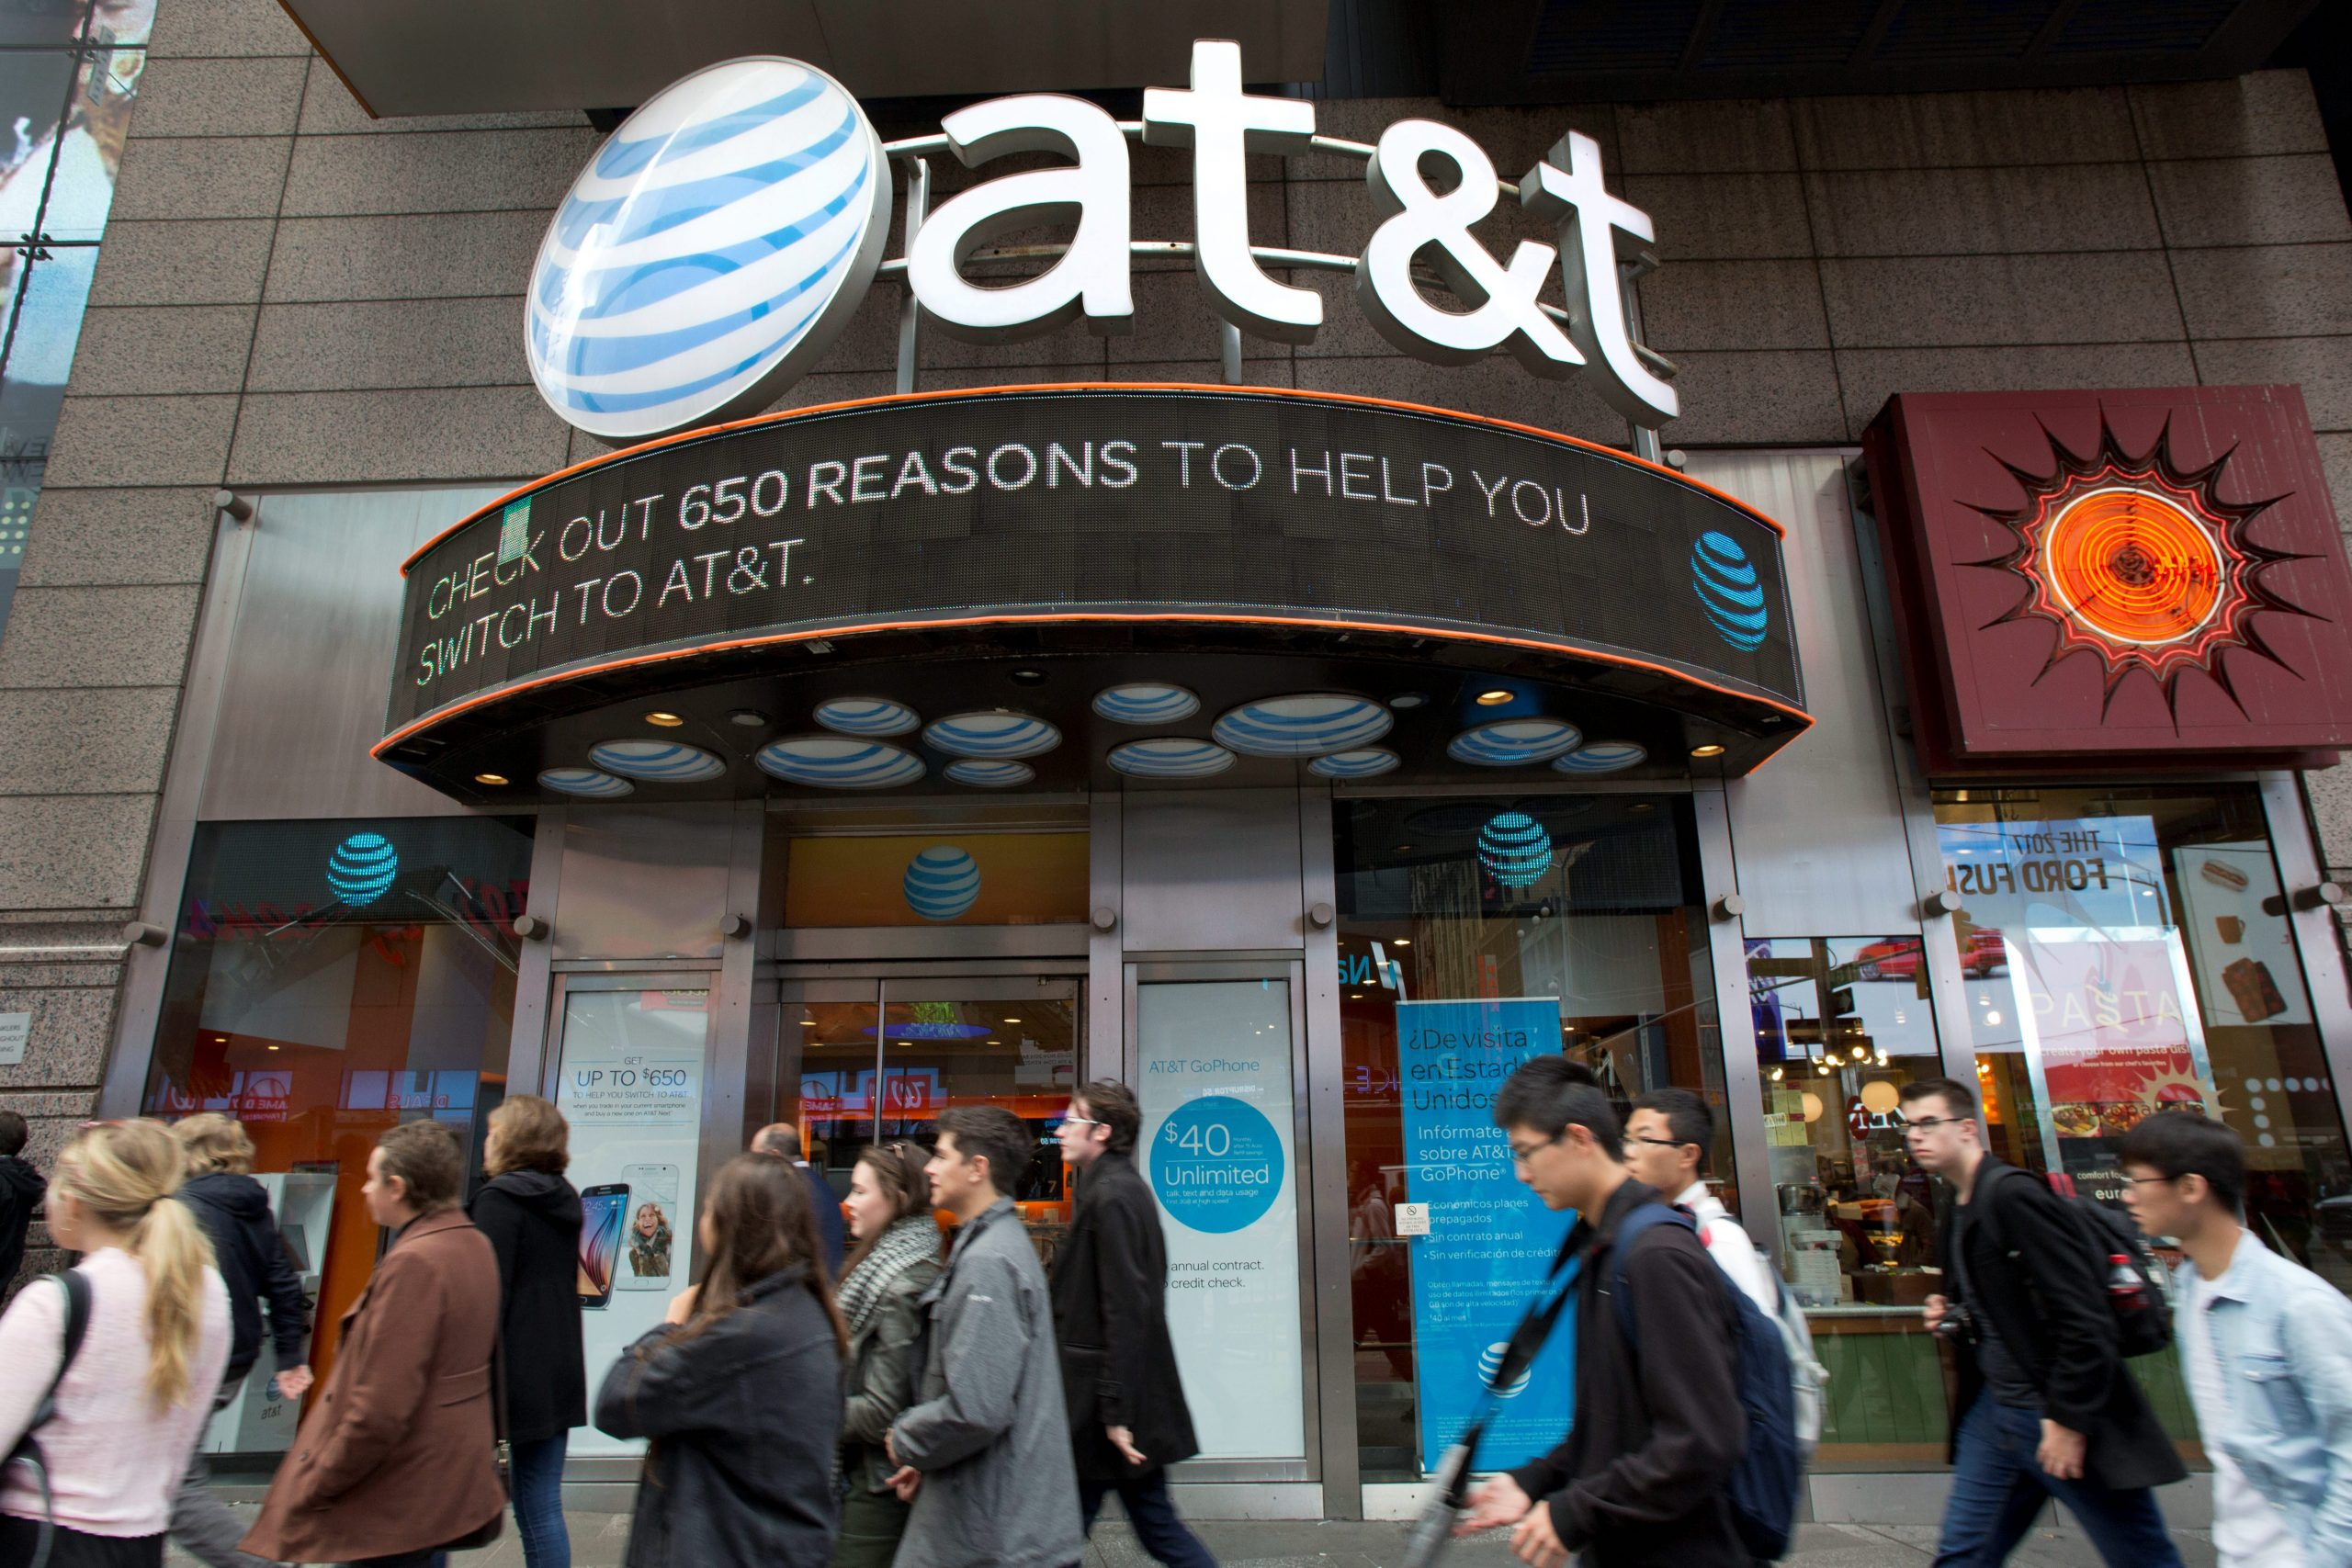 At&t, Time-Warner Merger Leaves Conservatives Fearing Impact